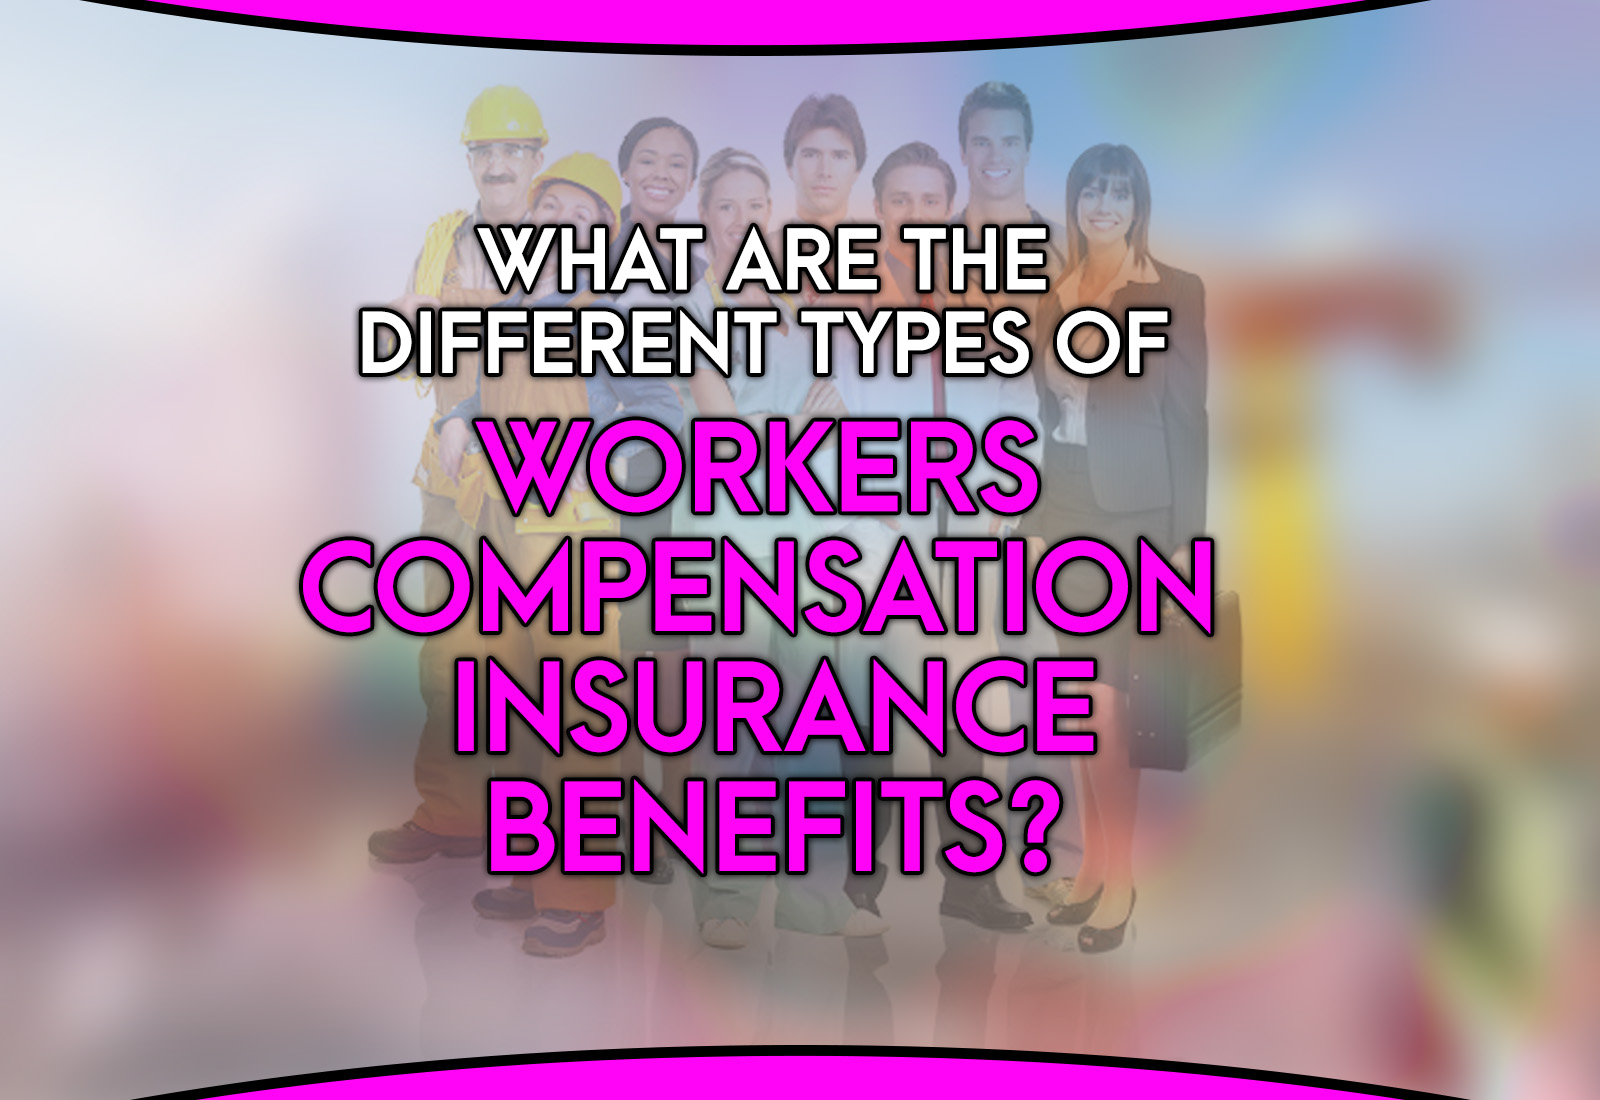 What are the Different Types of Workers Compensation Insurance Benefits?